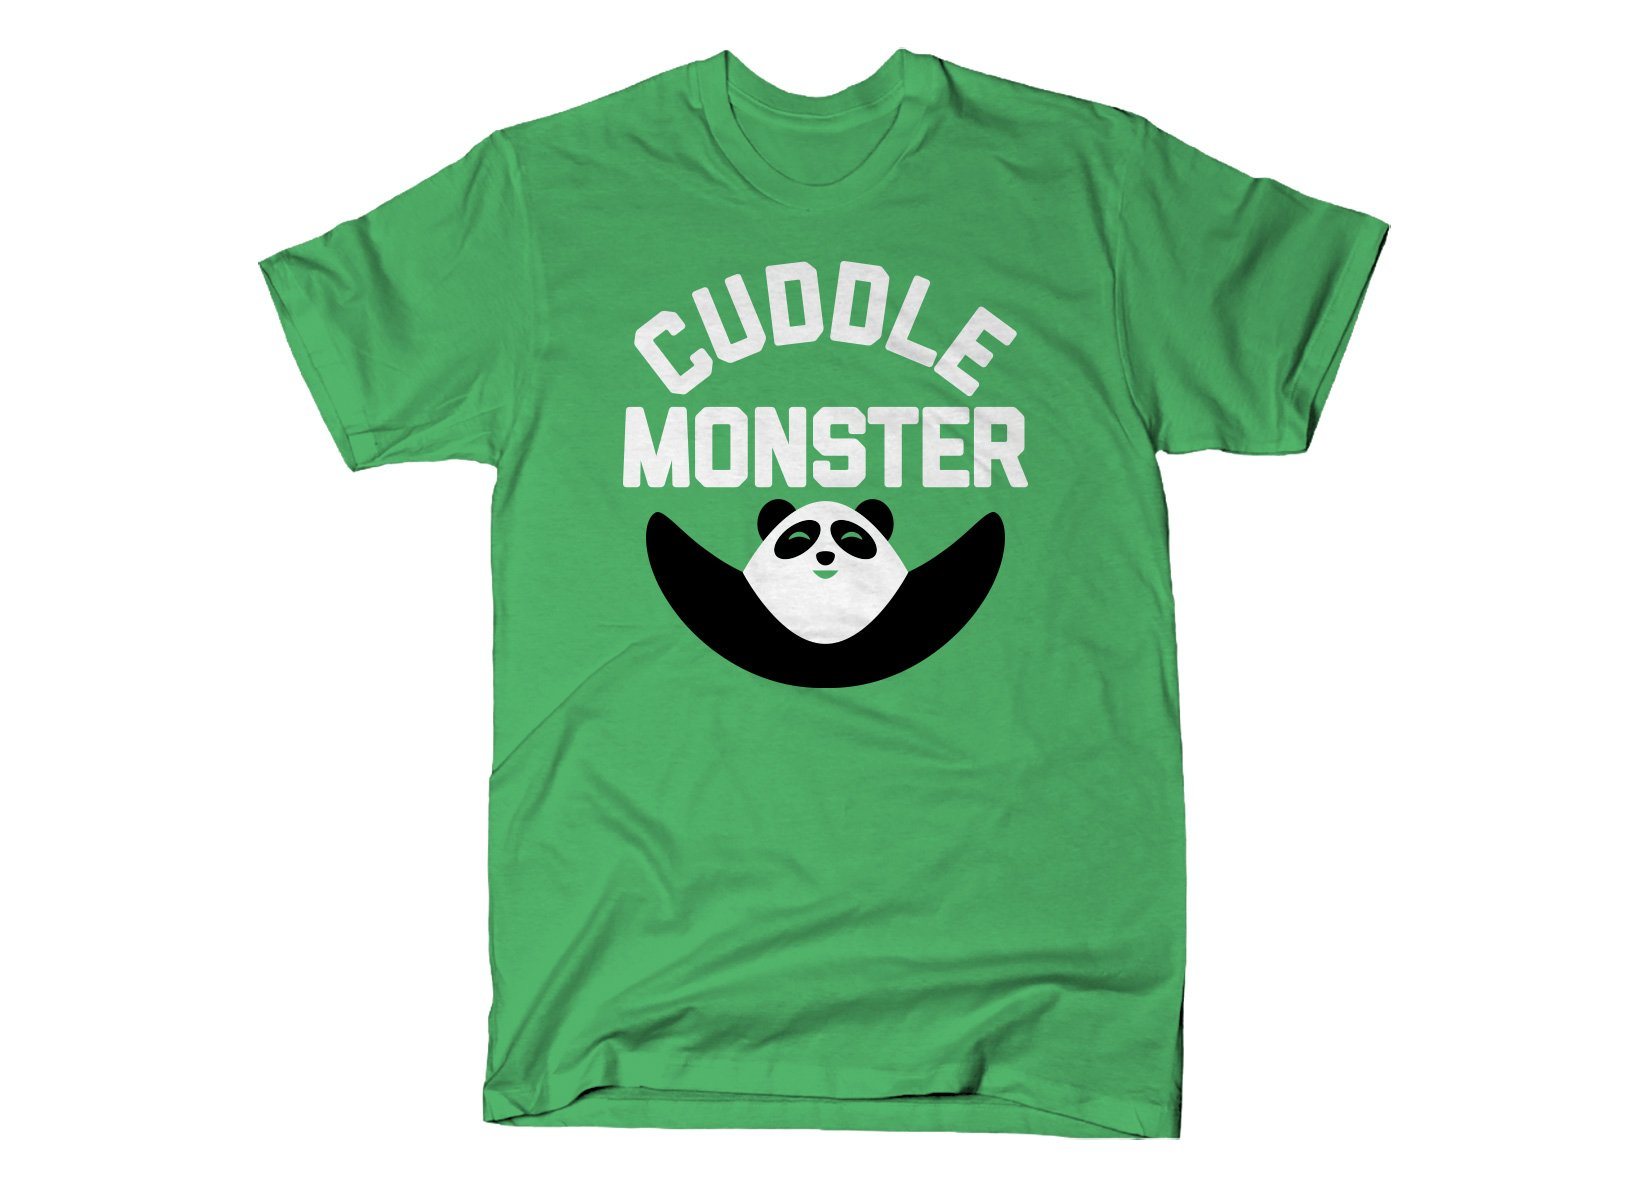 Cuddle Monster on Mens T-Shirt